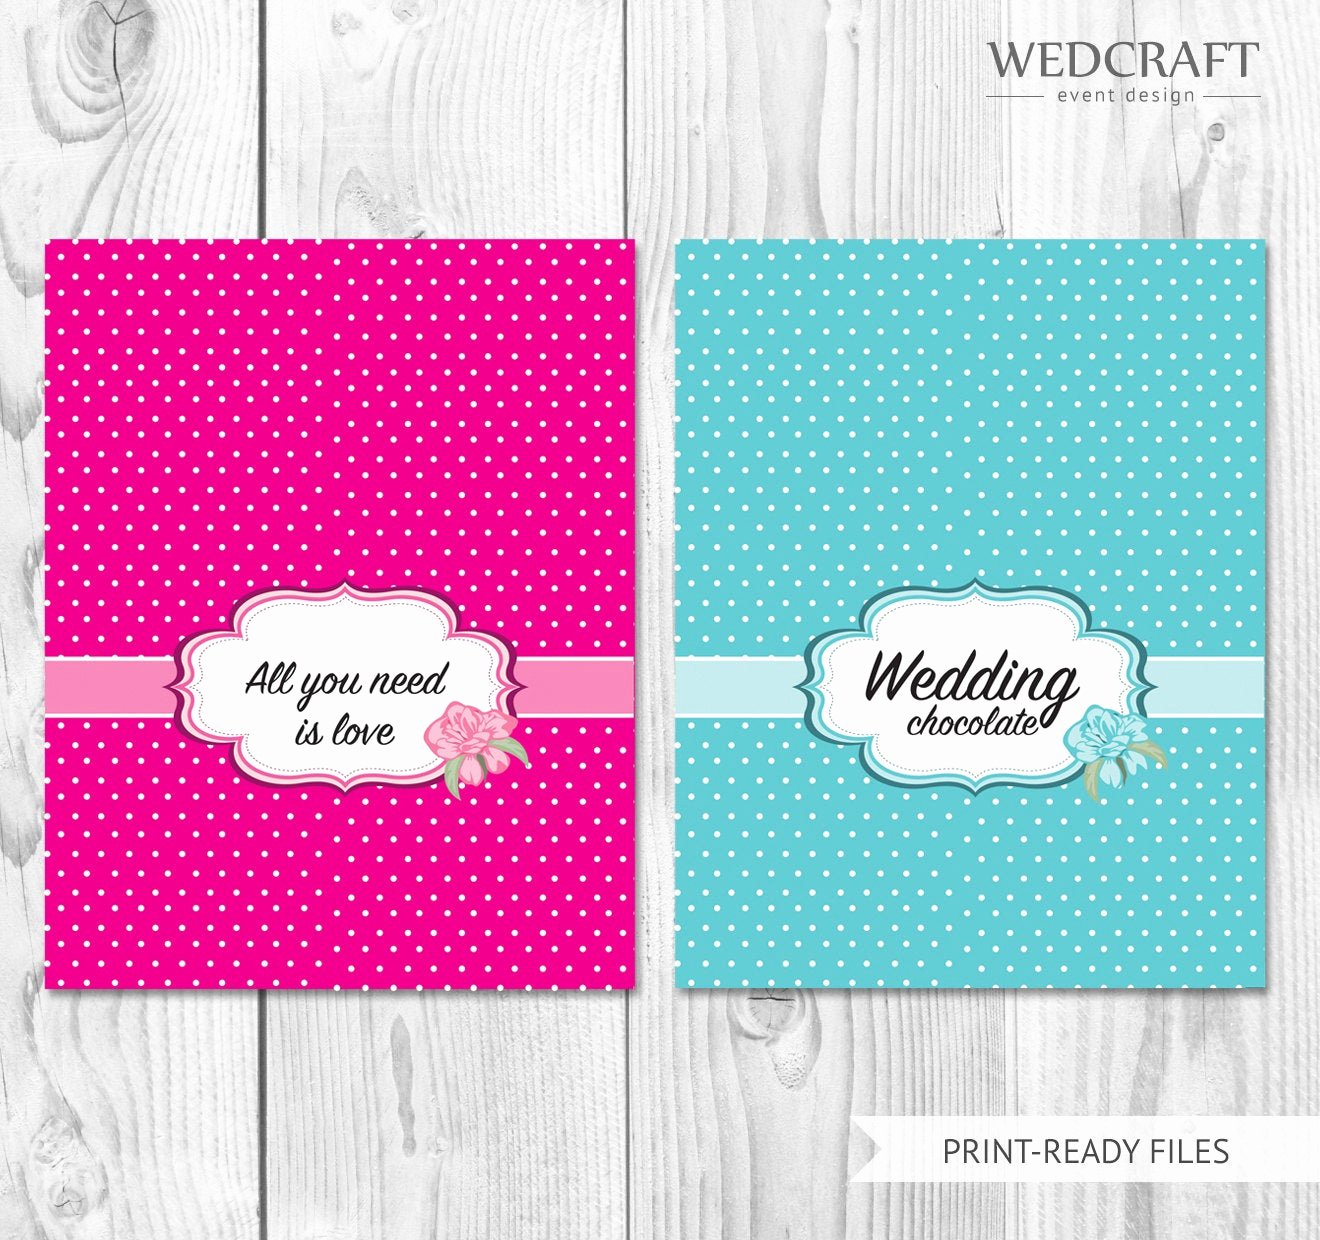 Candy Wrapper Template Lovely Wedding Candy Bar Wrapper Template Downloadable Candy